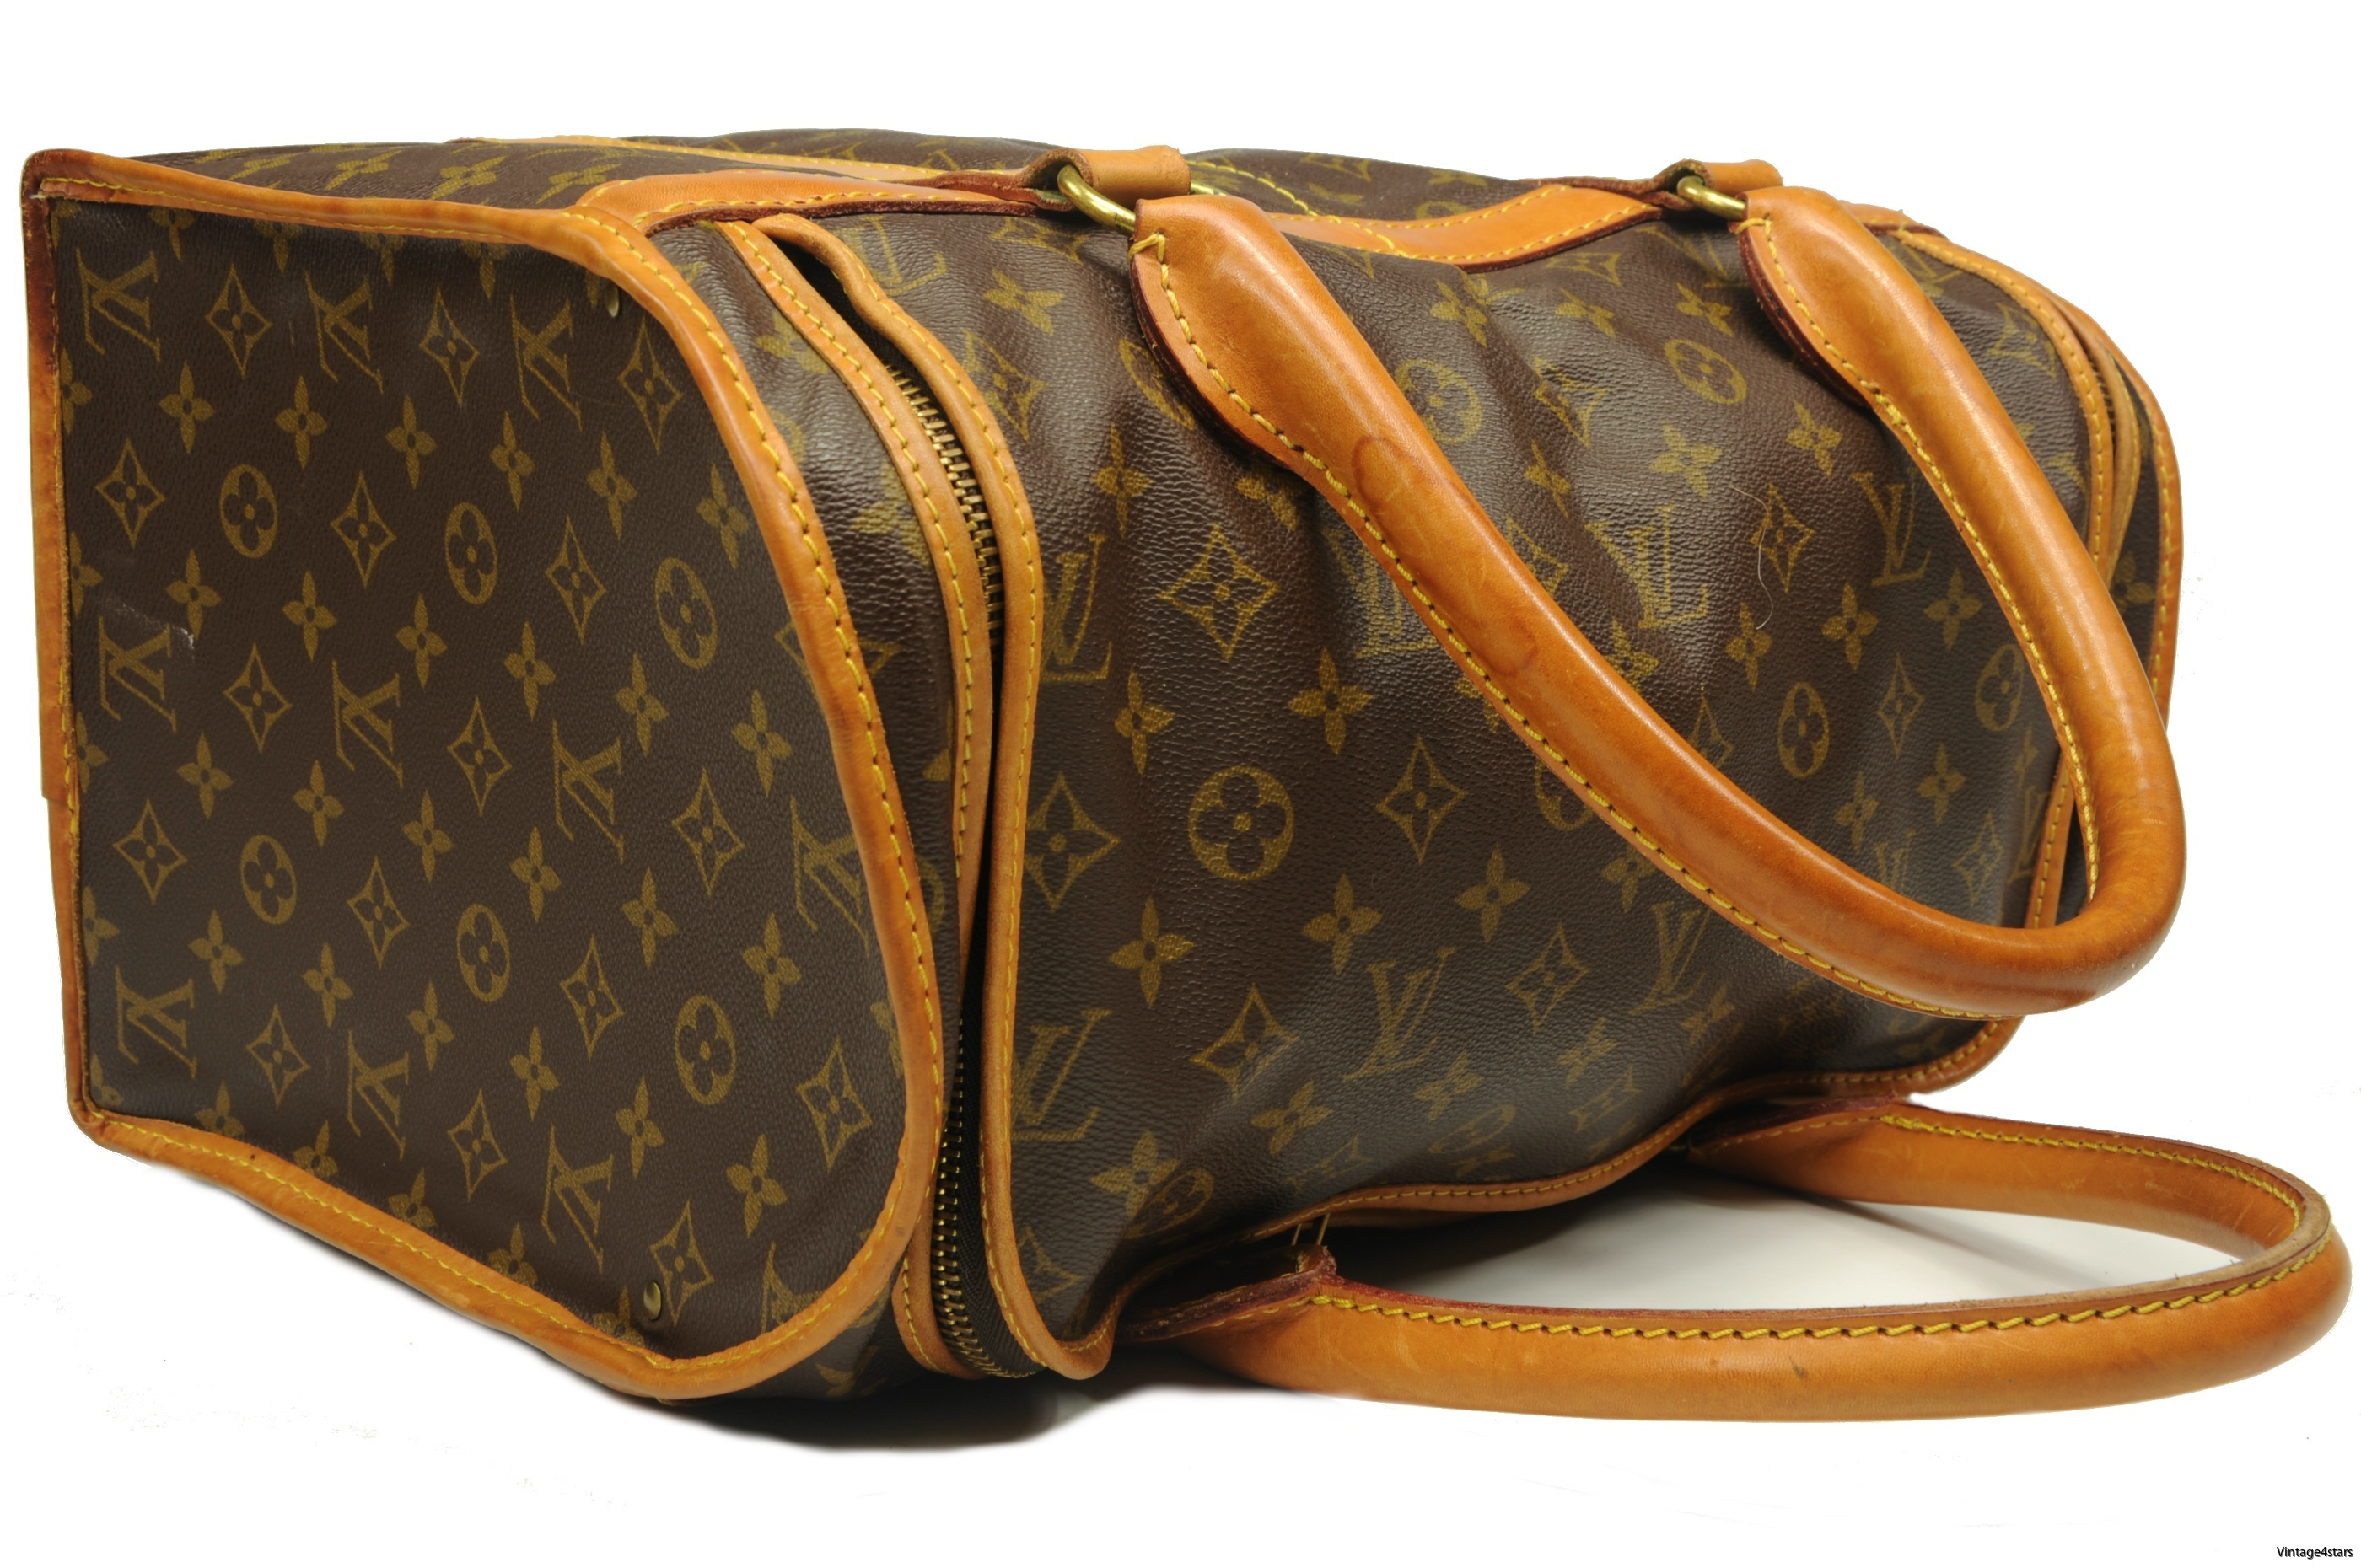 Louis Vuitton Sac Chien 40 8